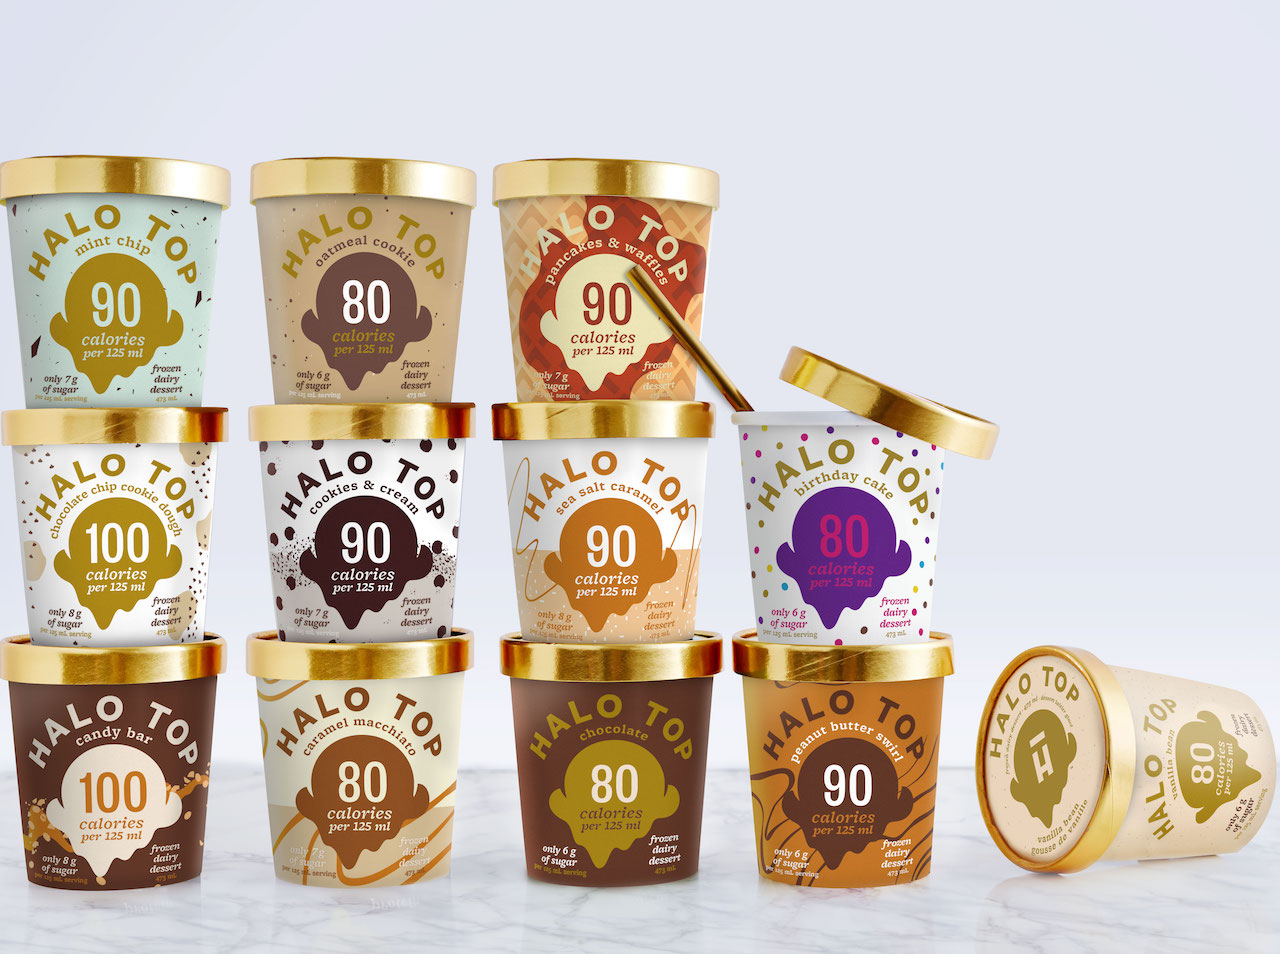 Halo Top Ice Cream Canada - 12 flavours in pint-sized tubs